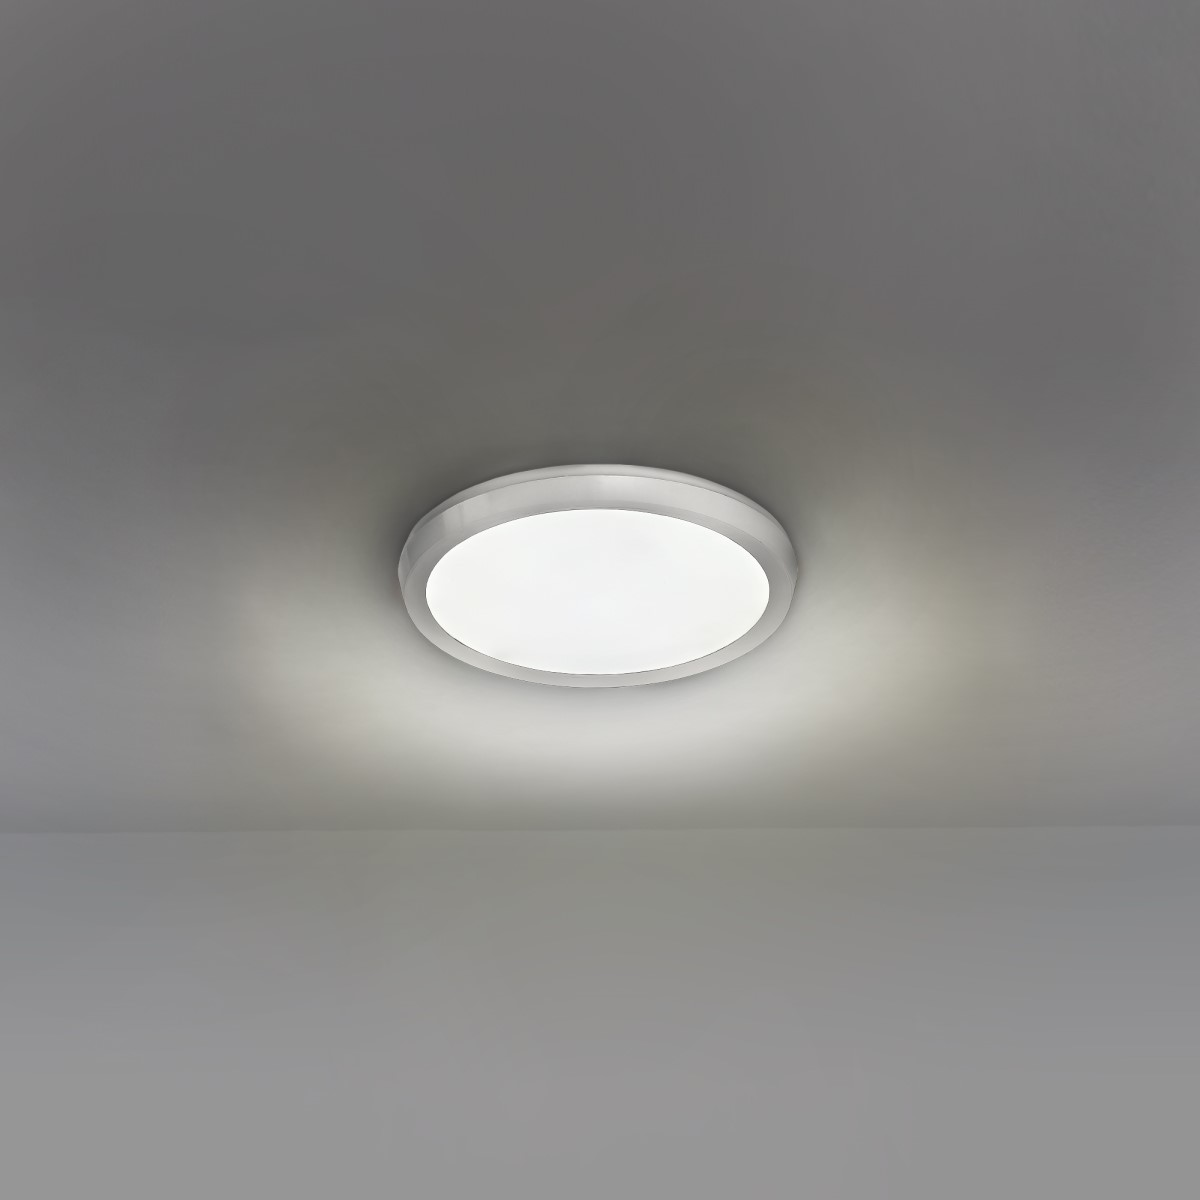 Argo lighting product